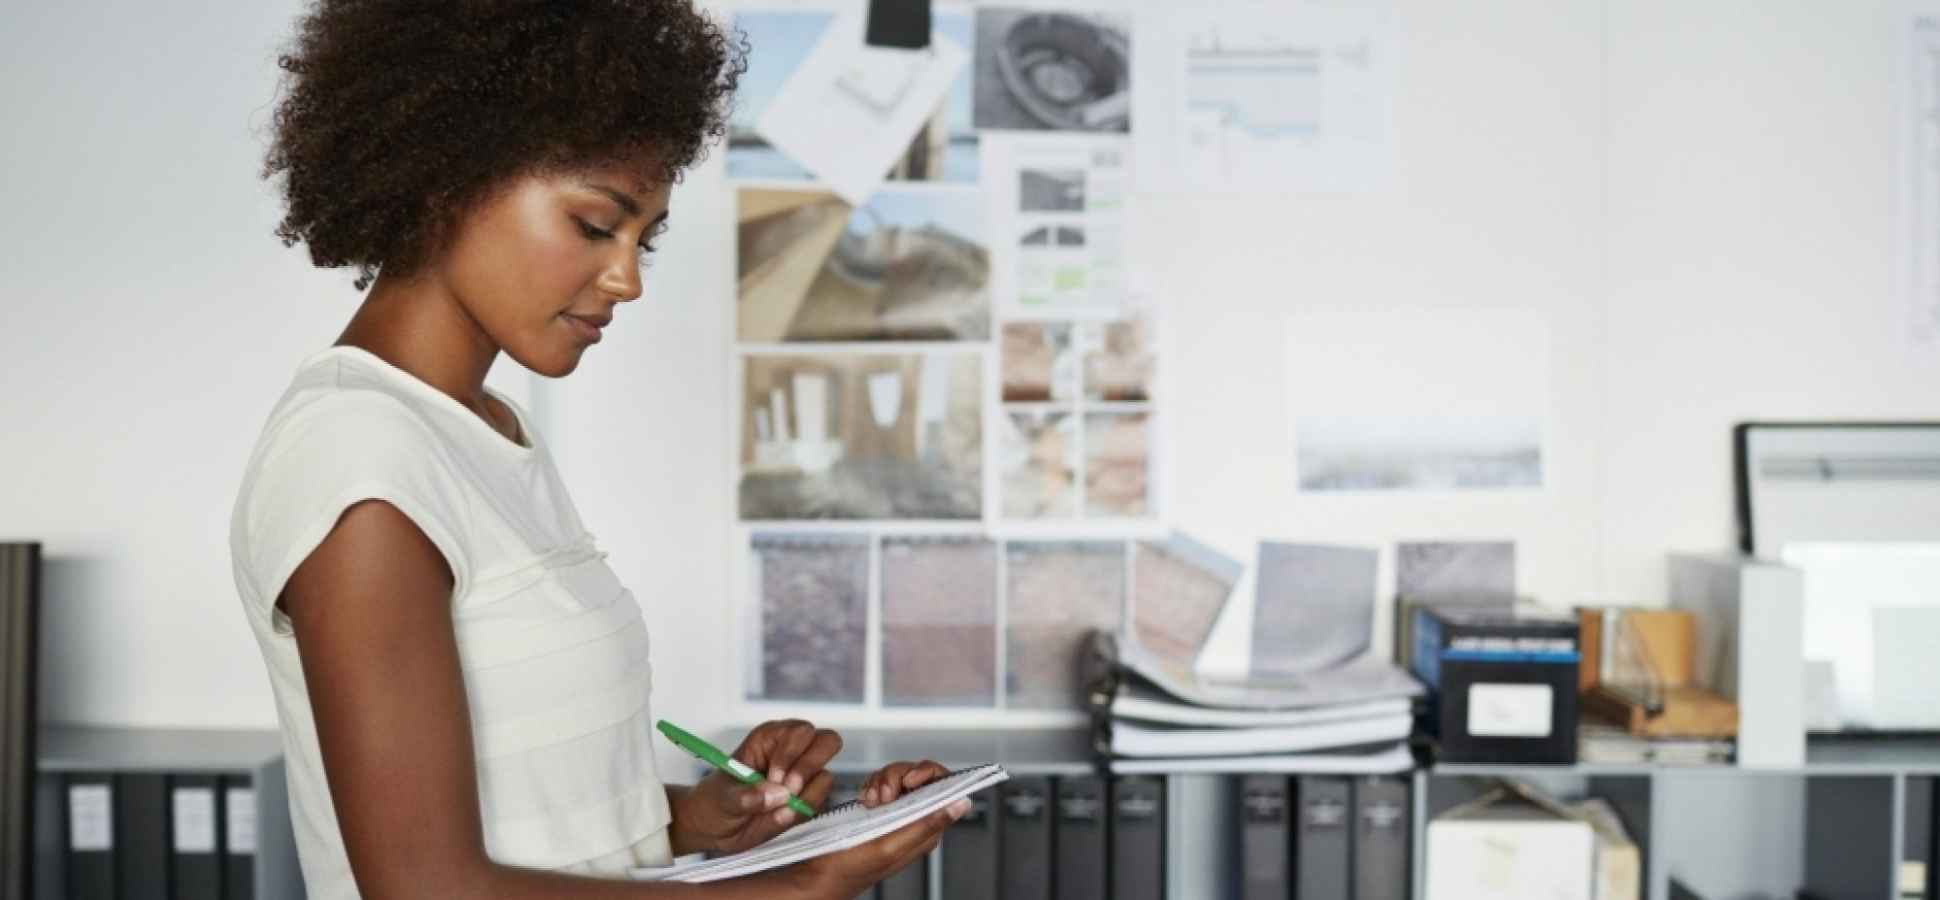 How to Know When Your Startup Needs to Hire a Project Manager